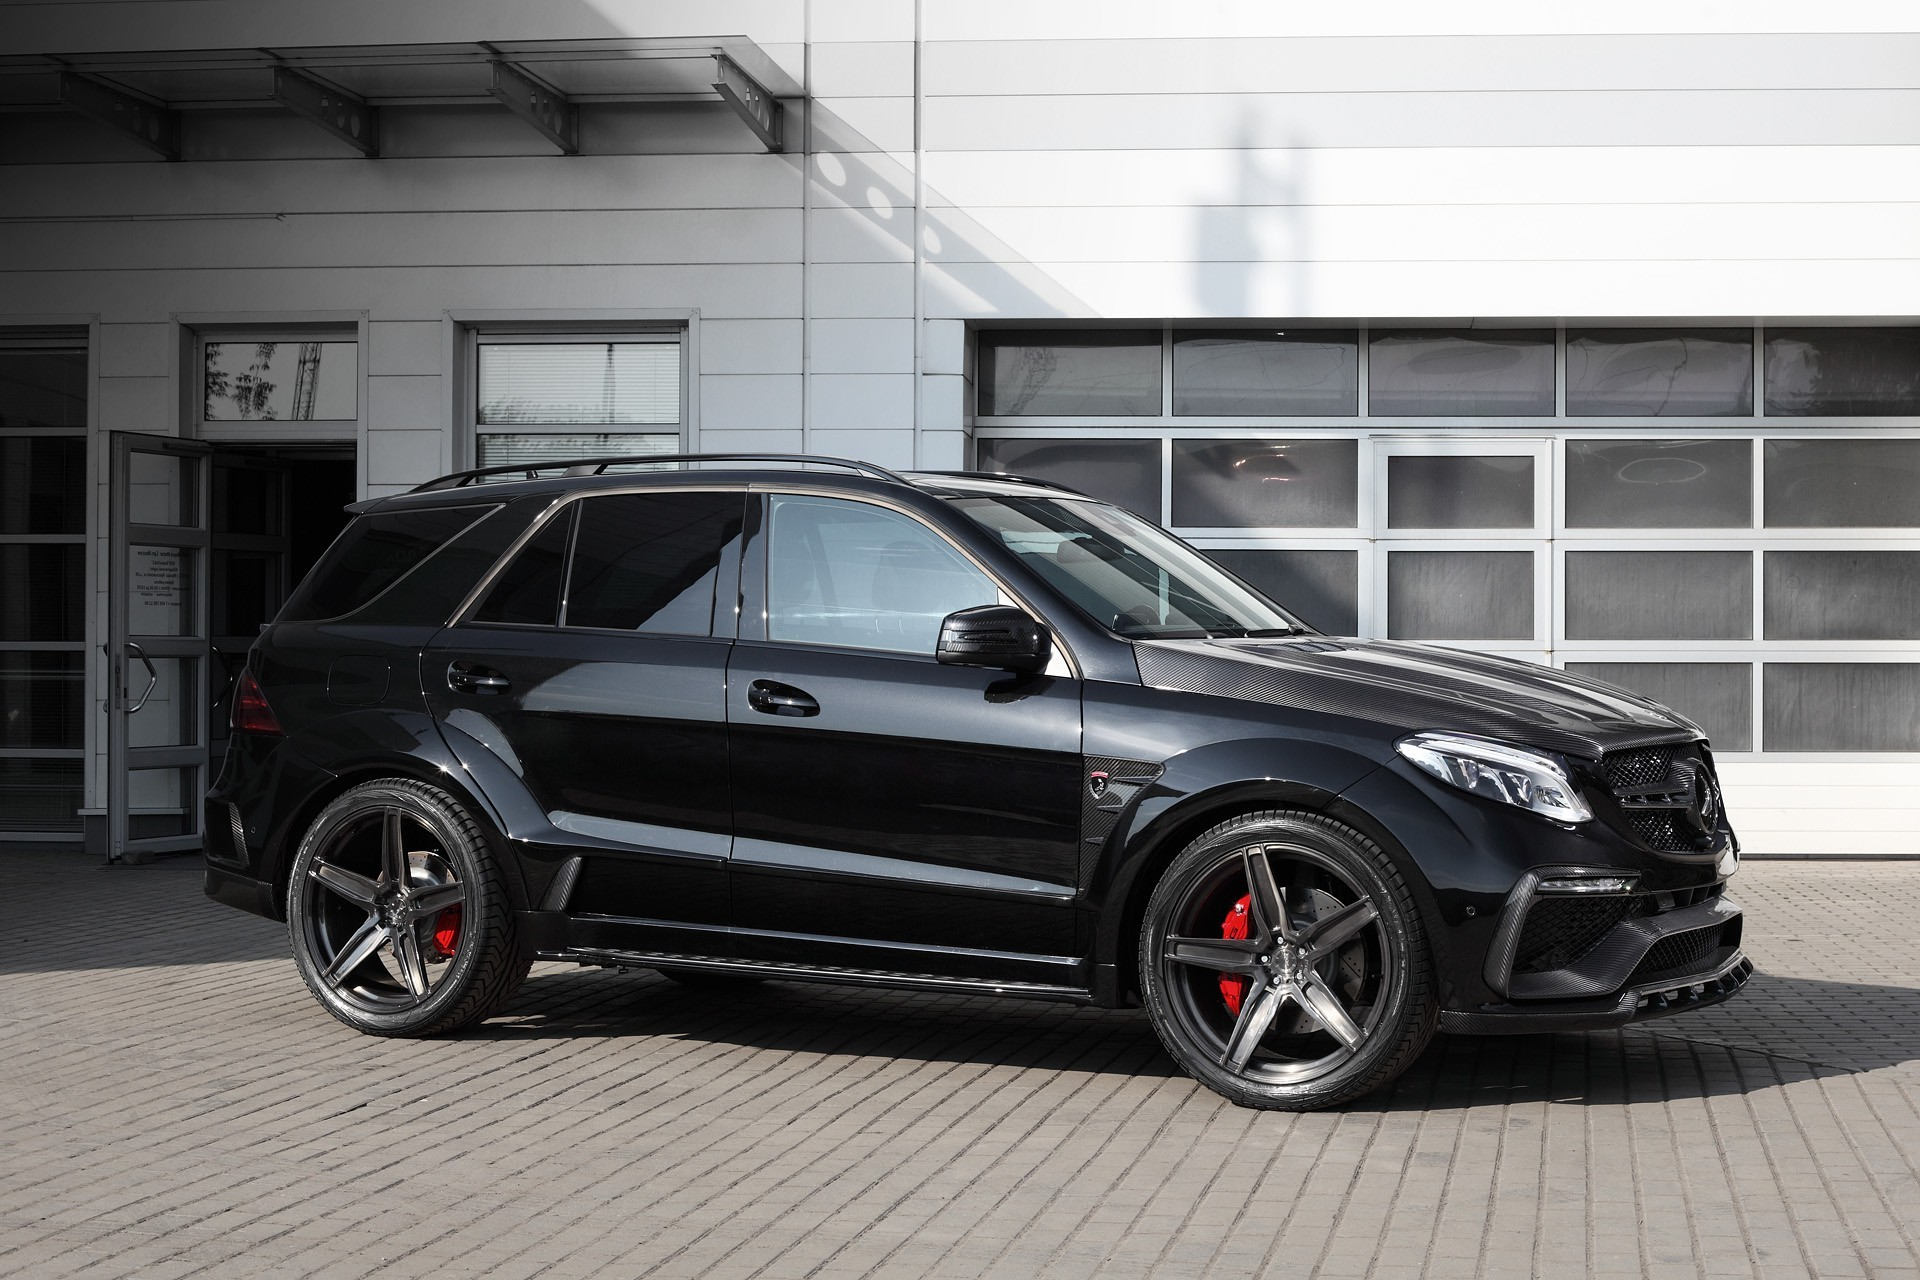 Mercedes Benz Gle 63 Gets Inferno Tuning Kit From Topcar